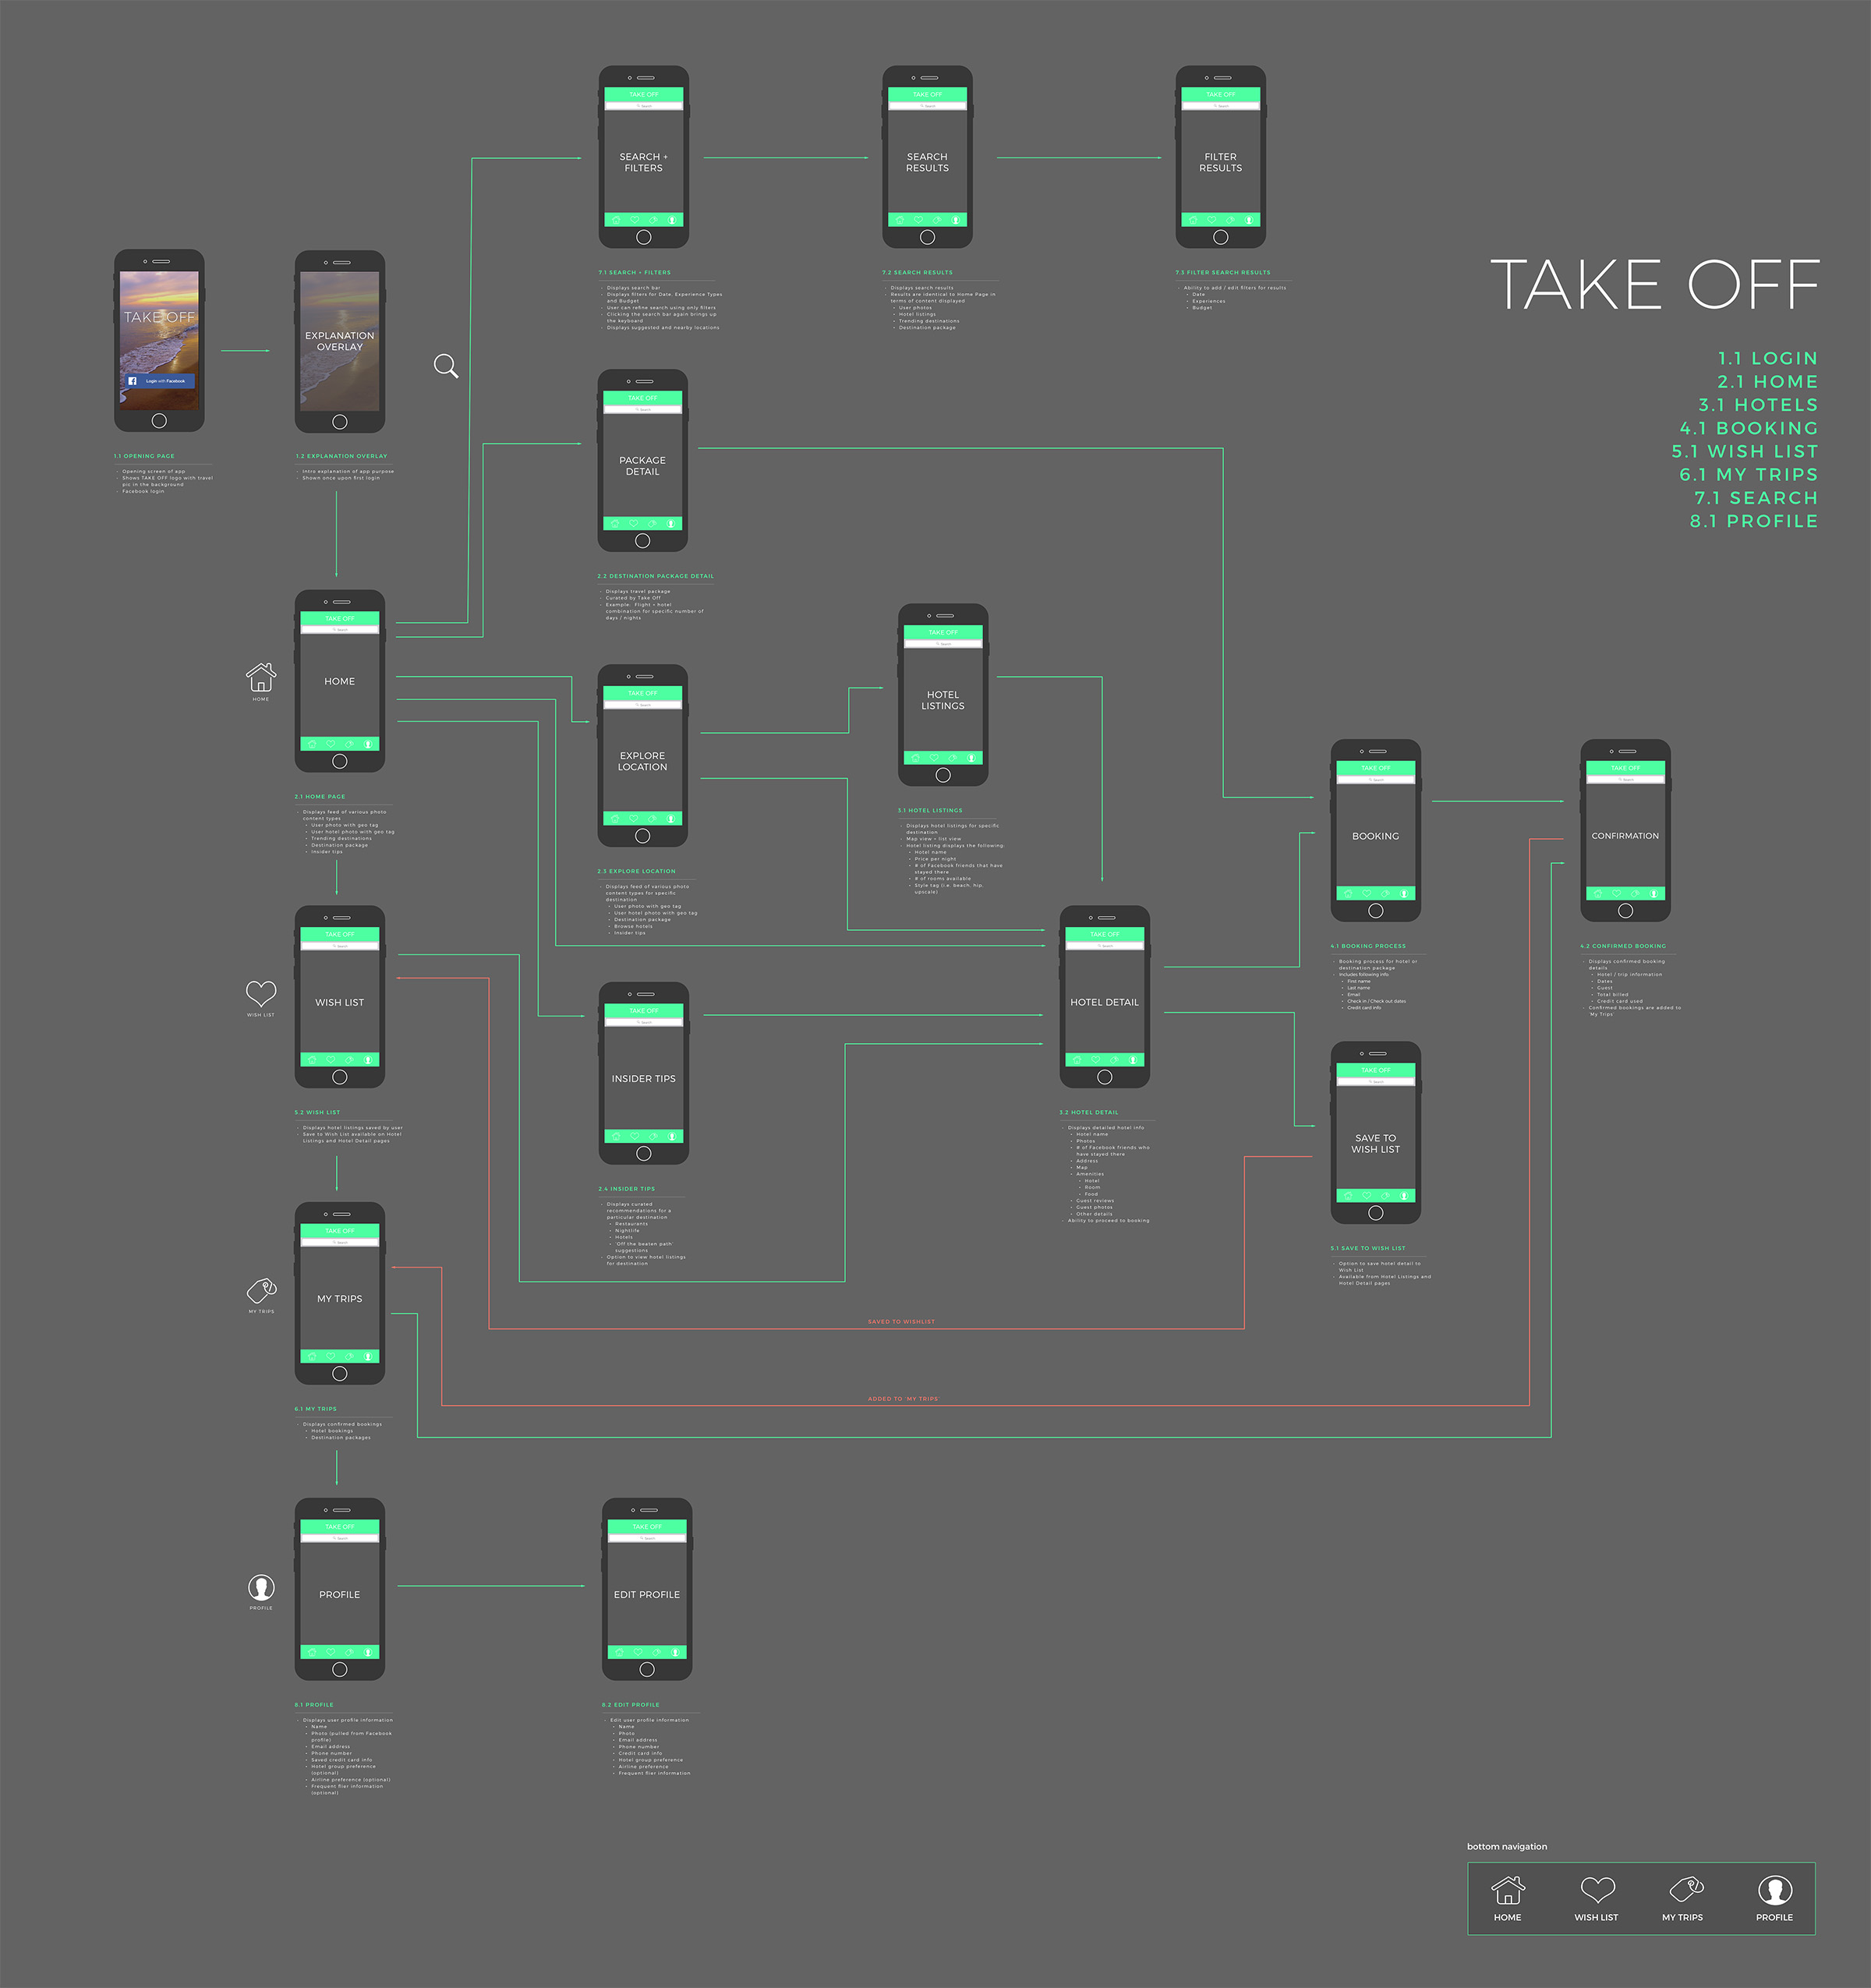 Take Off User Flow / App Map